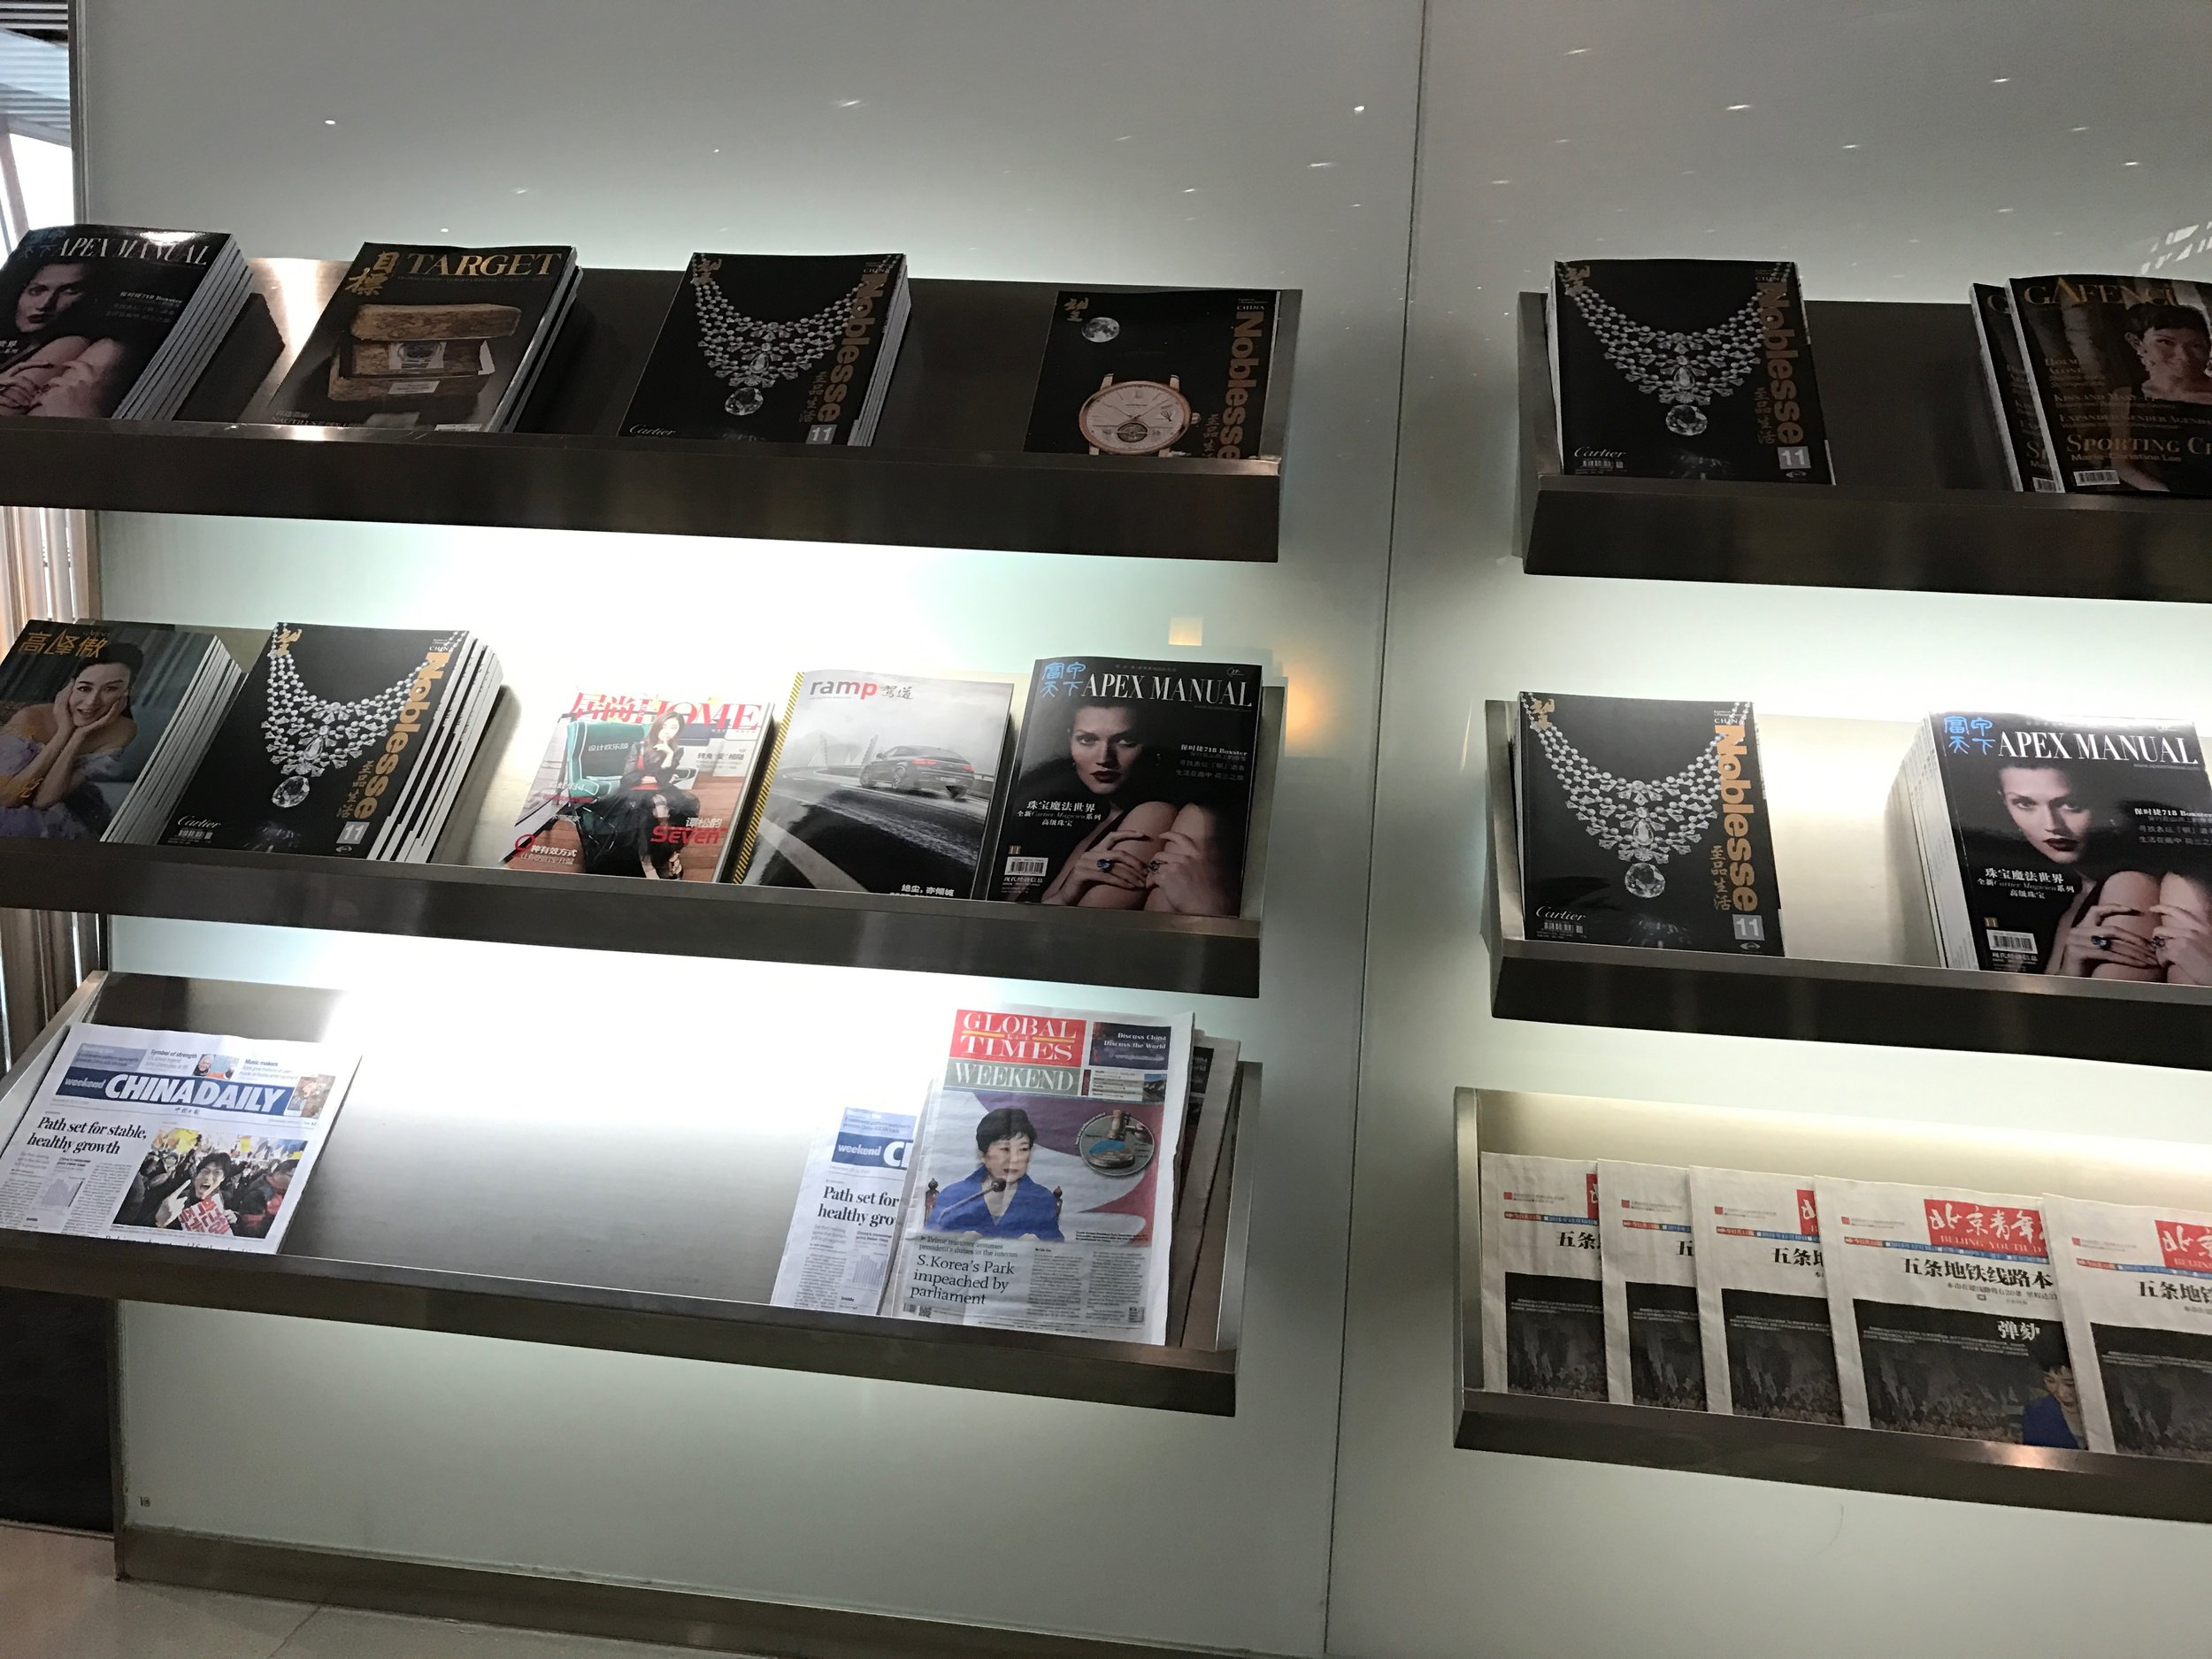 Magazines and newspapers at Cathay Pacific Lounge, Beijing Airport (PEK) T3E